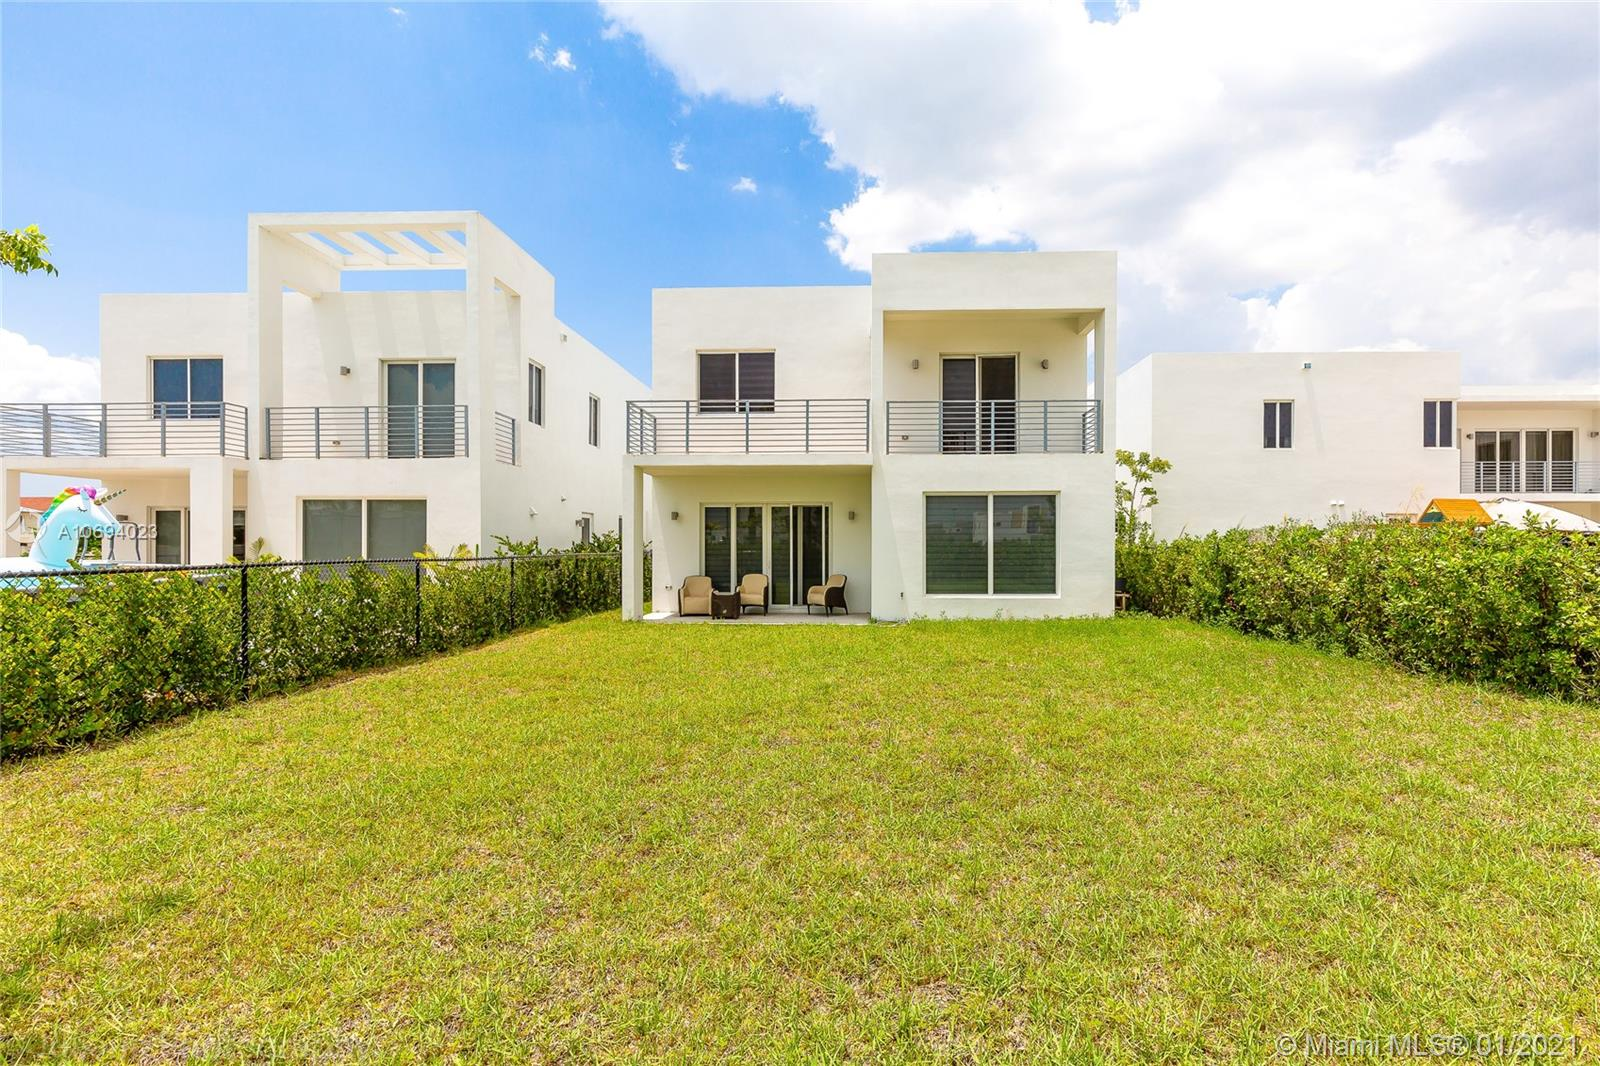 Amazing, MODERN LUXURY HOME, with an extra lot of patio, one of the few new houses in Doral with extra Lot, 1 Room on the first floor, bathroom with direct access to the patio.